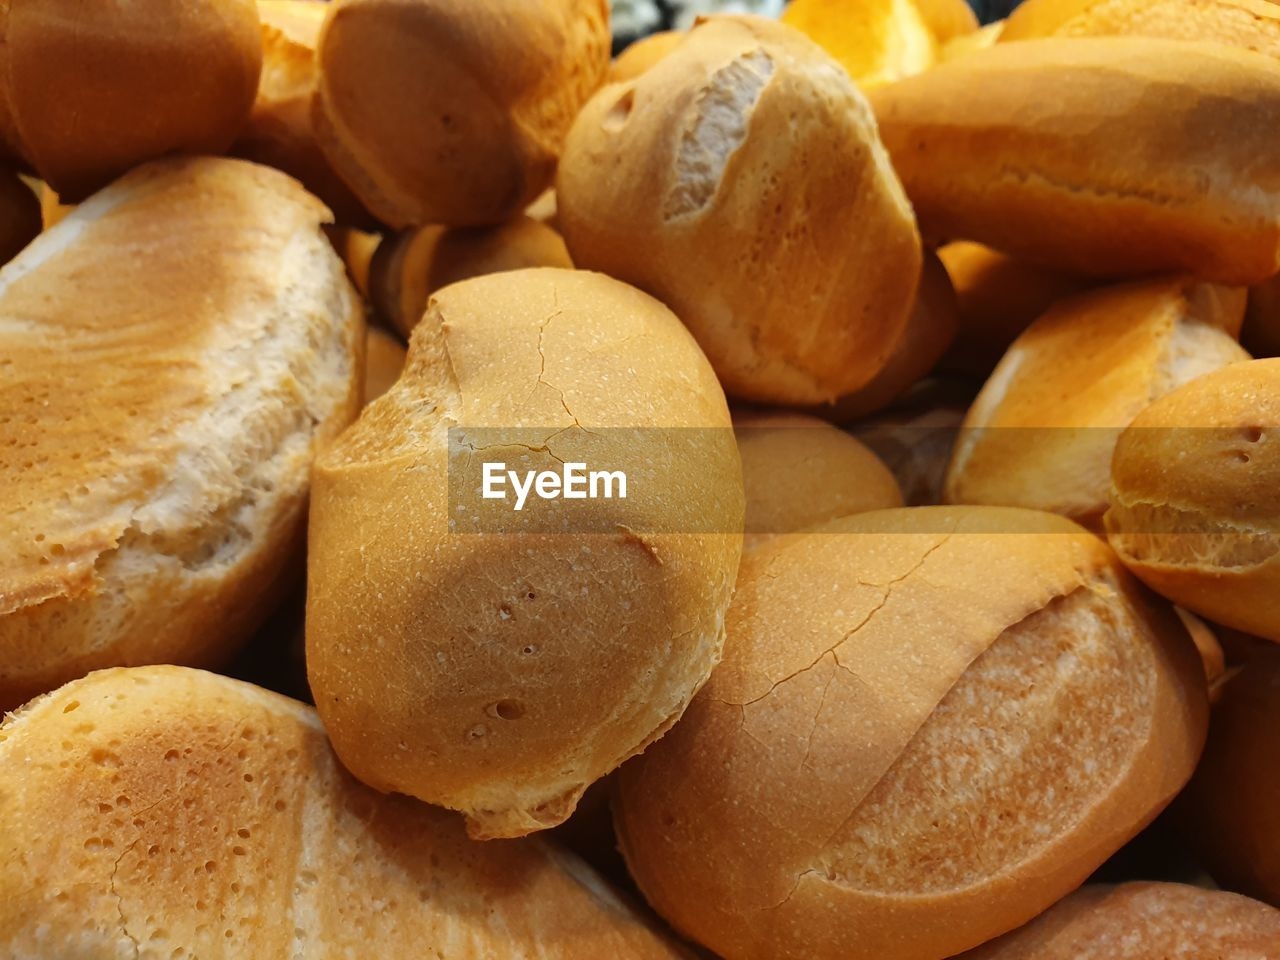 food, food and drink, freshness, full frame, still life, backgrounds, large group of objects, wellbeing, healthy eating, close-up, bread, no people, brown, indoors, abundance, focus on foreground, baked, ready-to-eat, high angle view, selective focus, snack